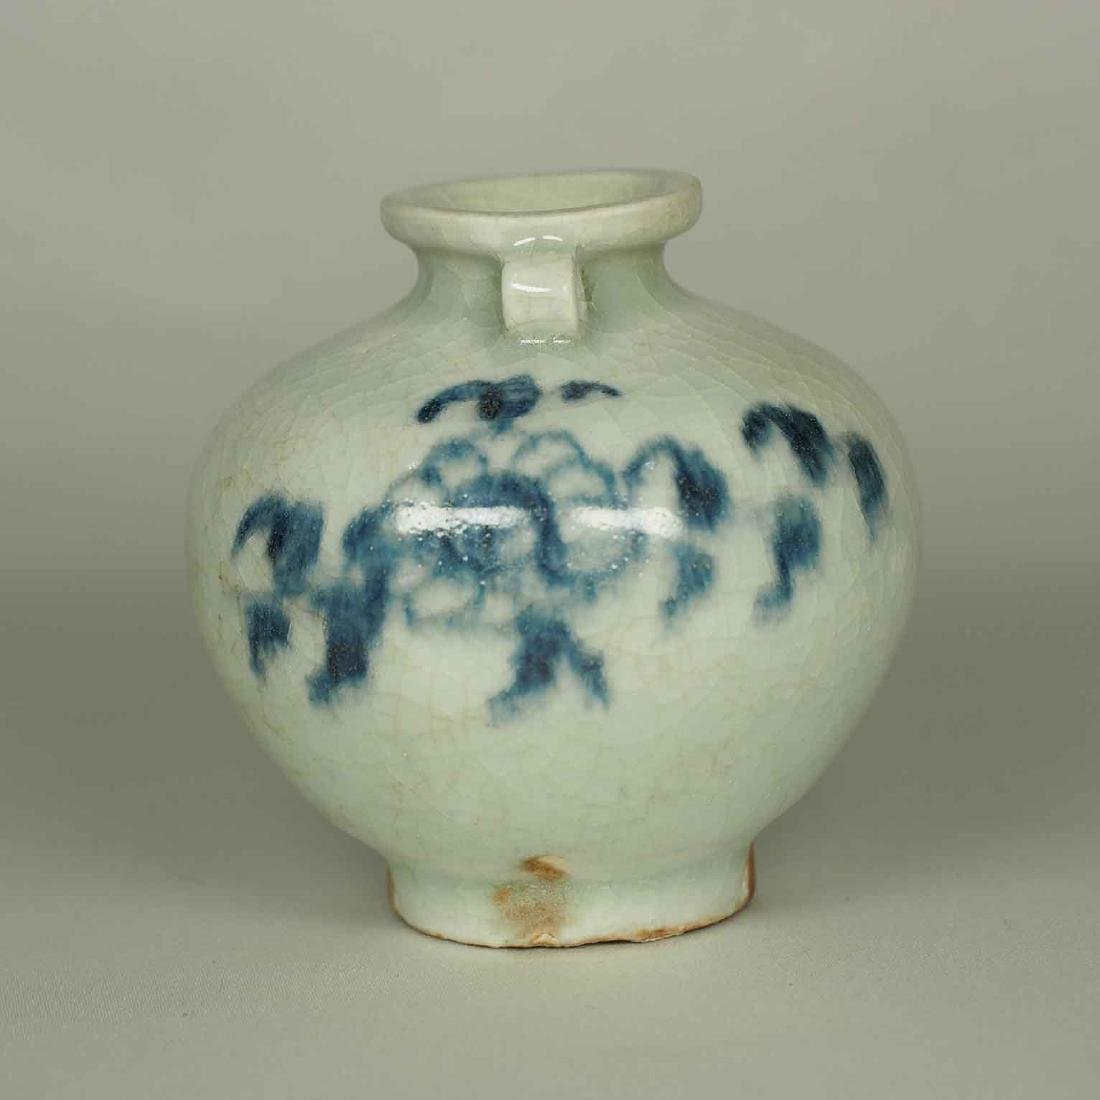 Jarlet with Chrysanthemum Flower, Yuan Dynasty - 2